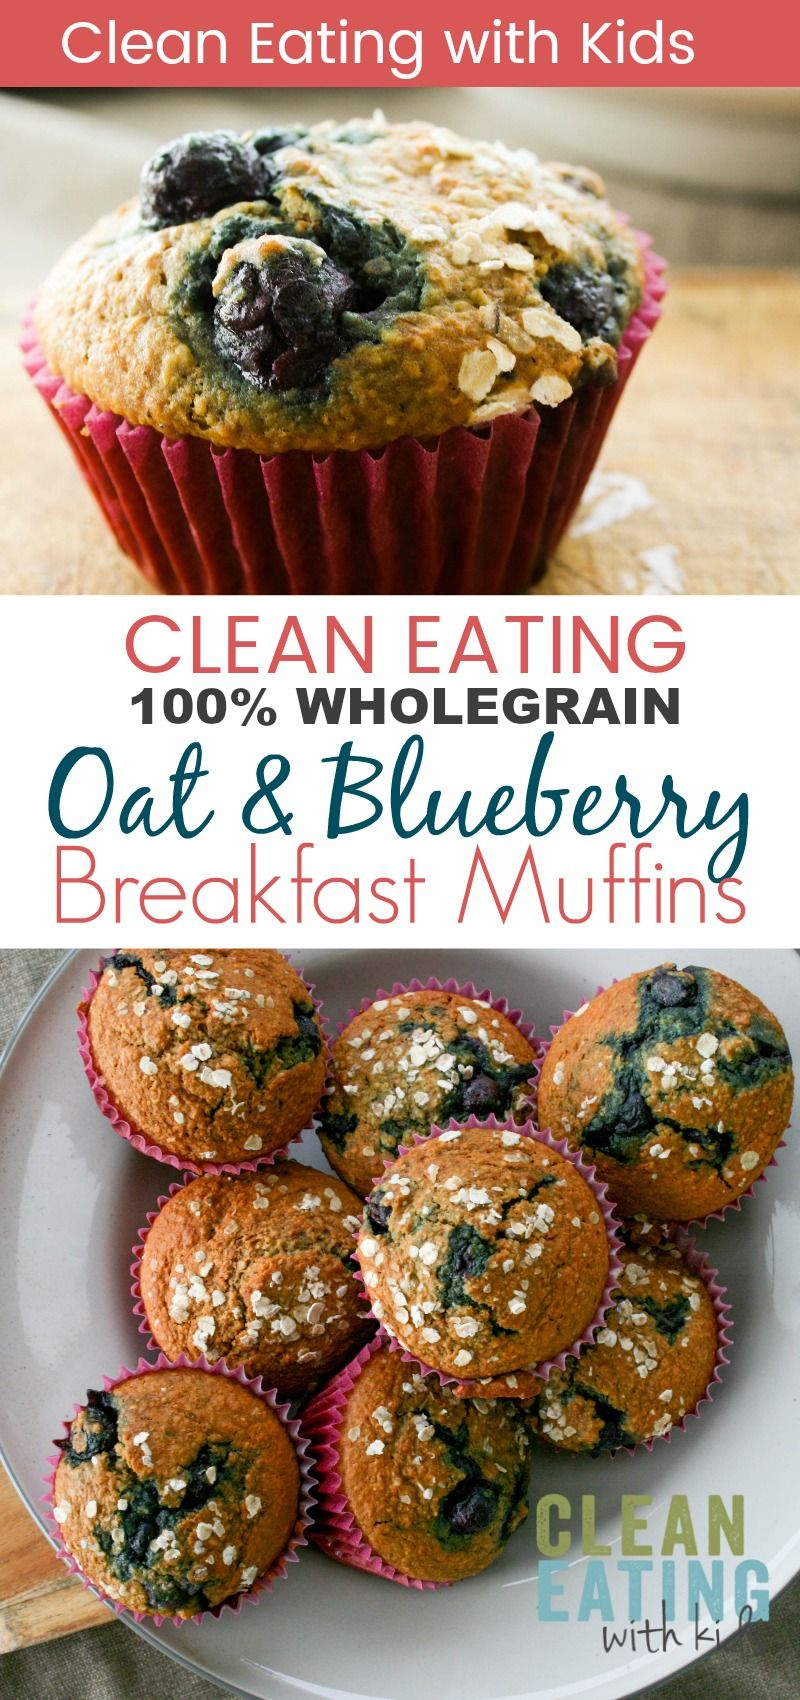 Clean Eating Oat Bran Blueberry Muffins - Clean Eating with kids -   17 desserts Blueberry clean eating ideas